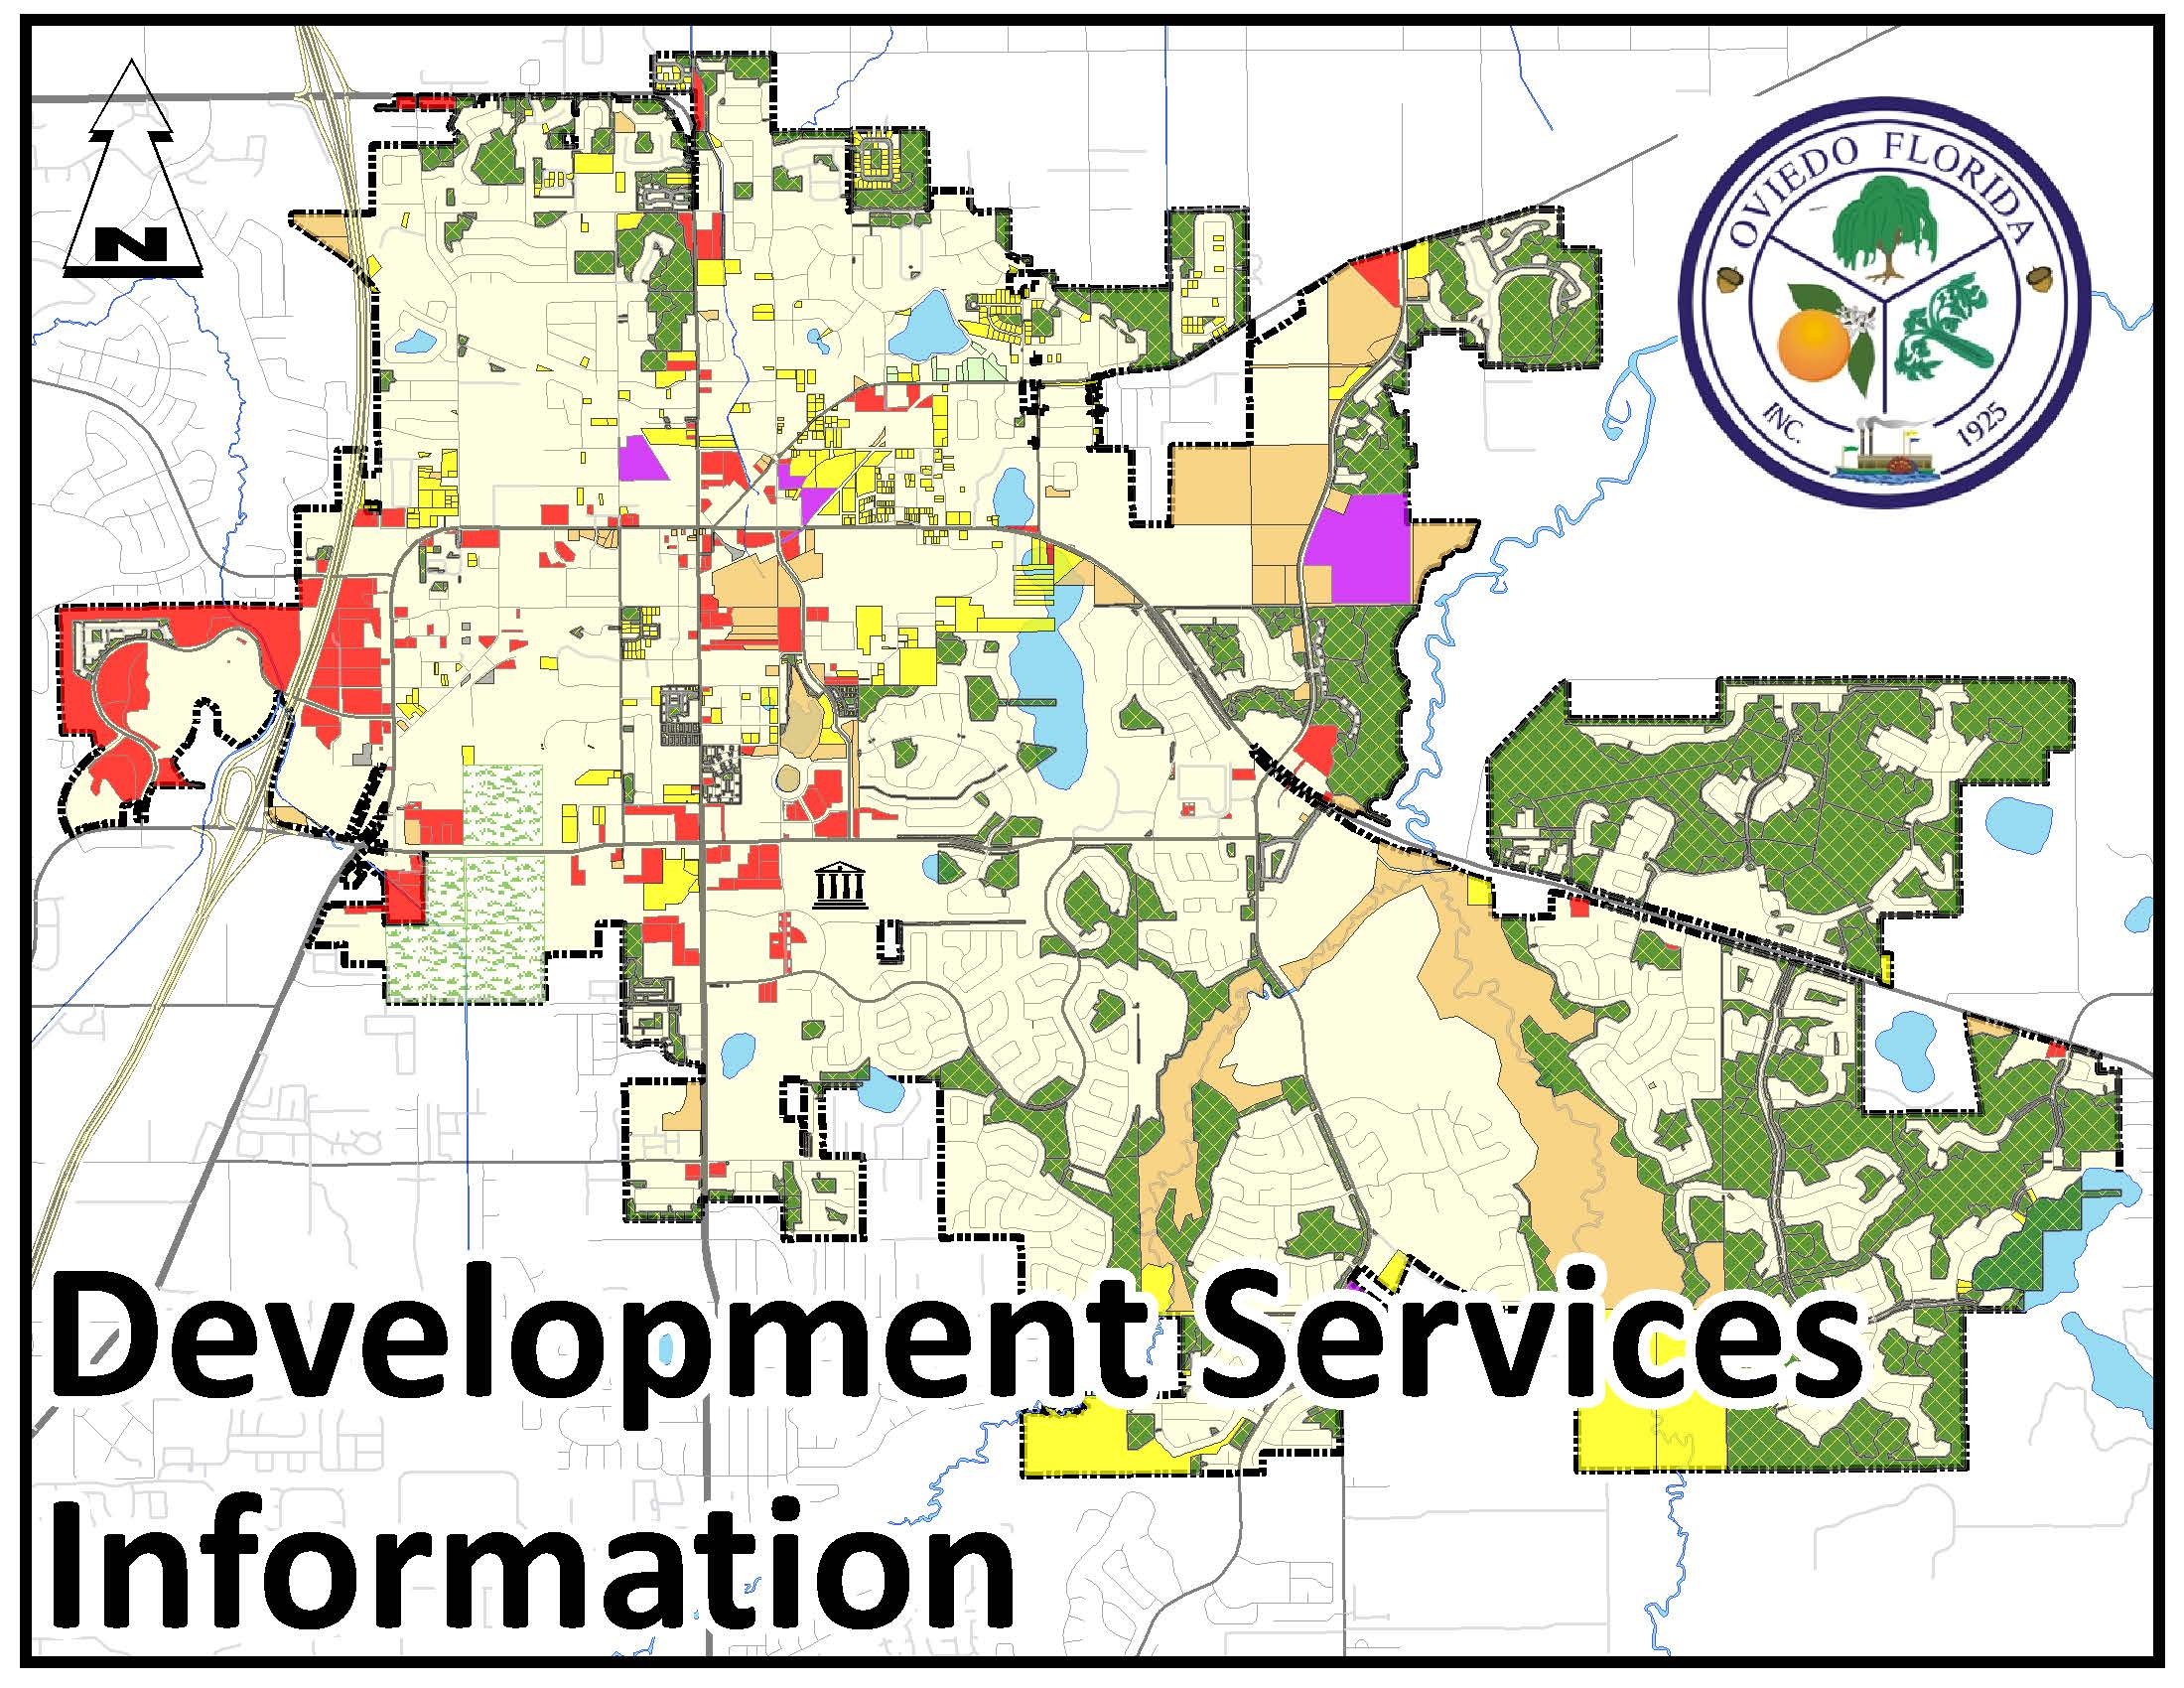 Check a location for Planning & Development information